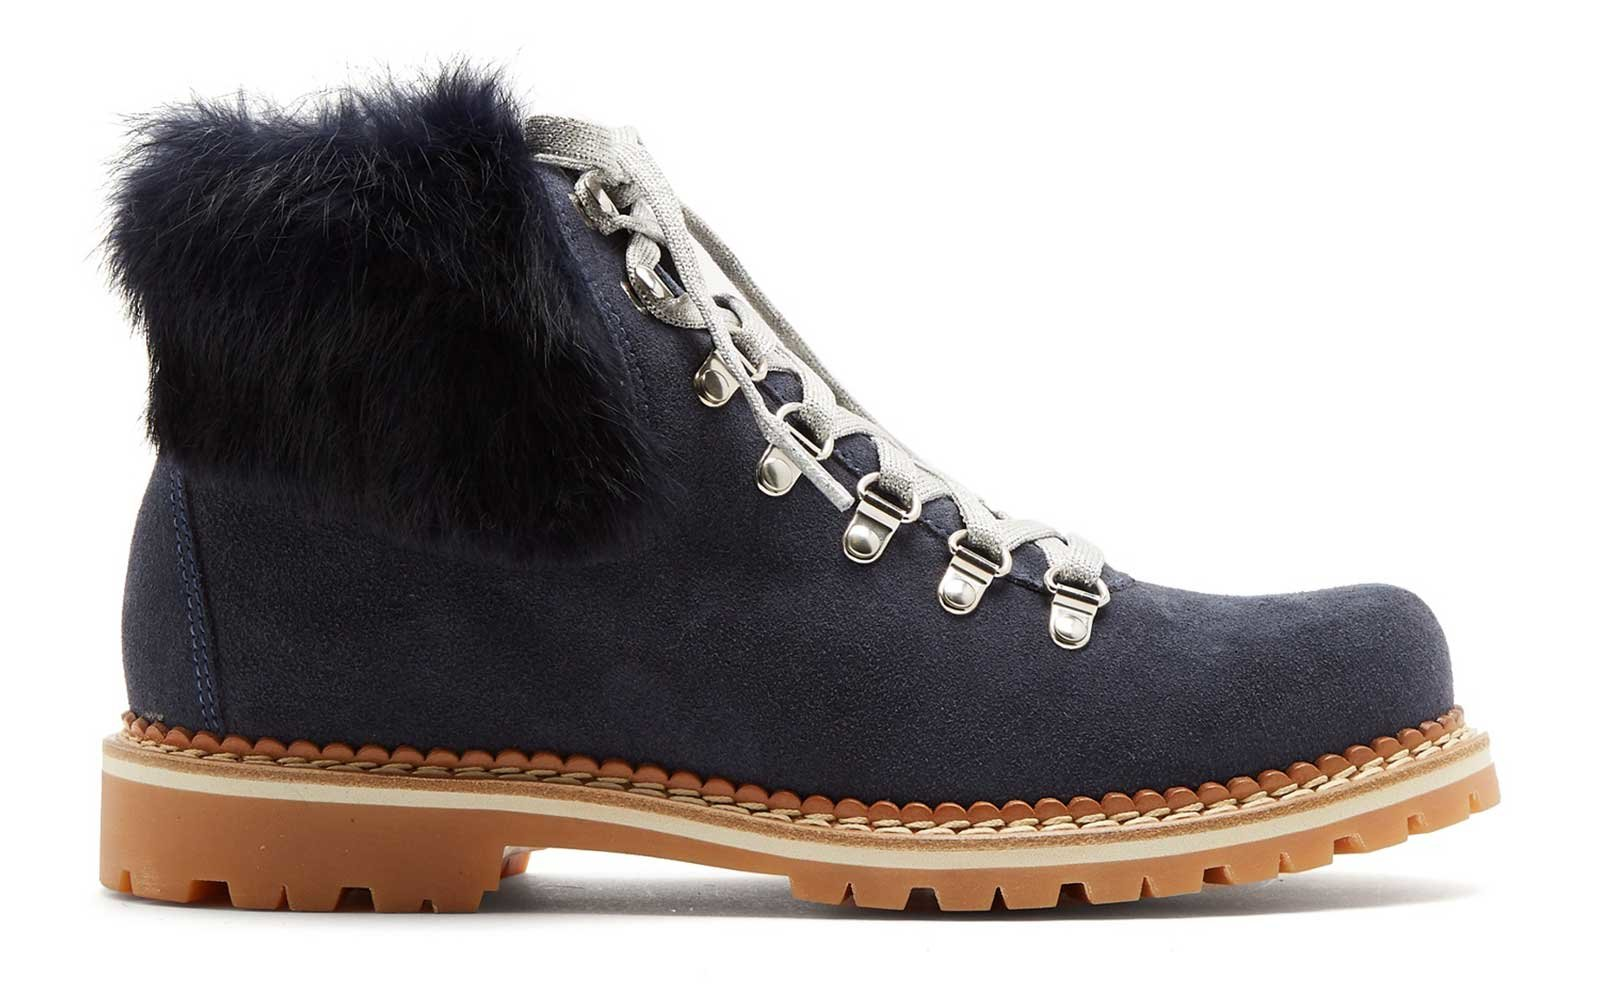 Fur trimmed mountain boots by Montelilana